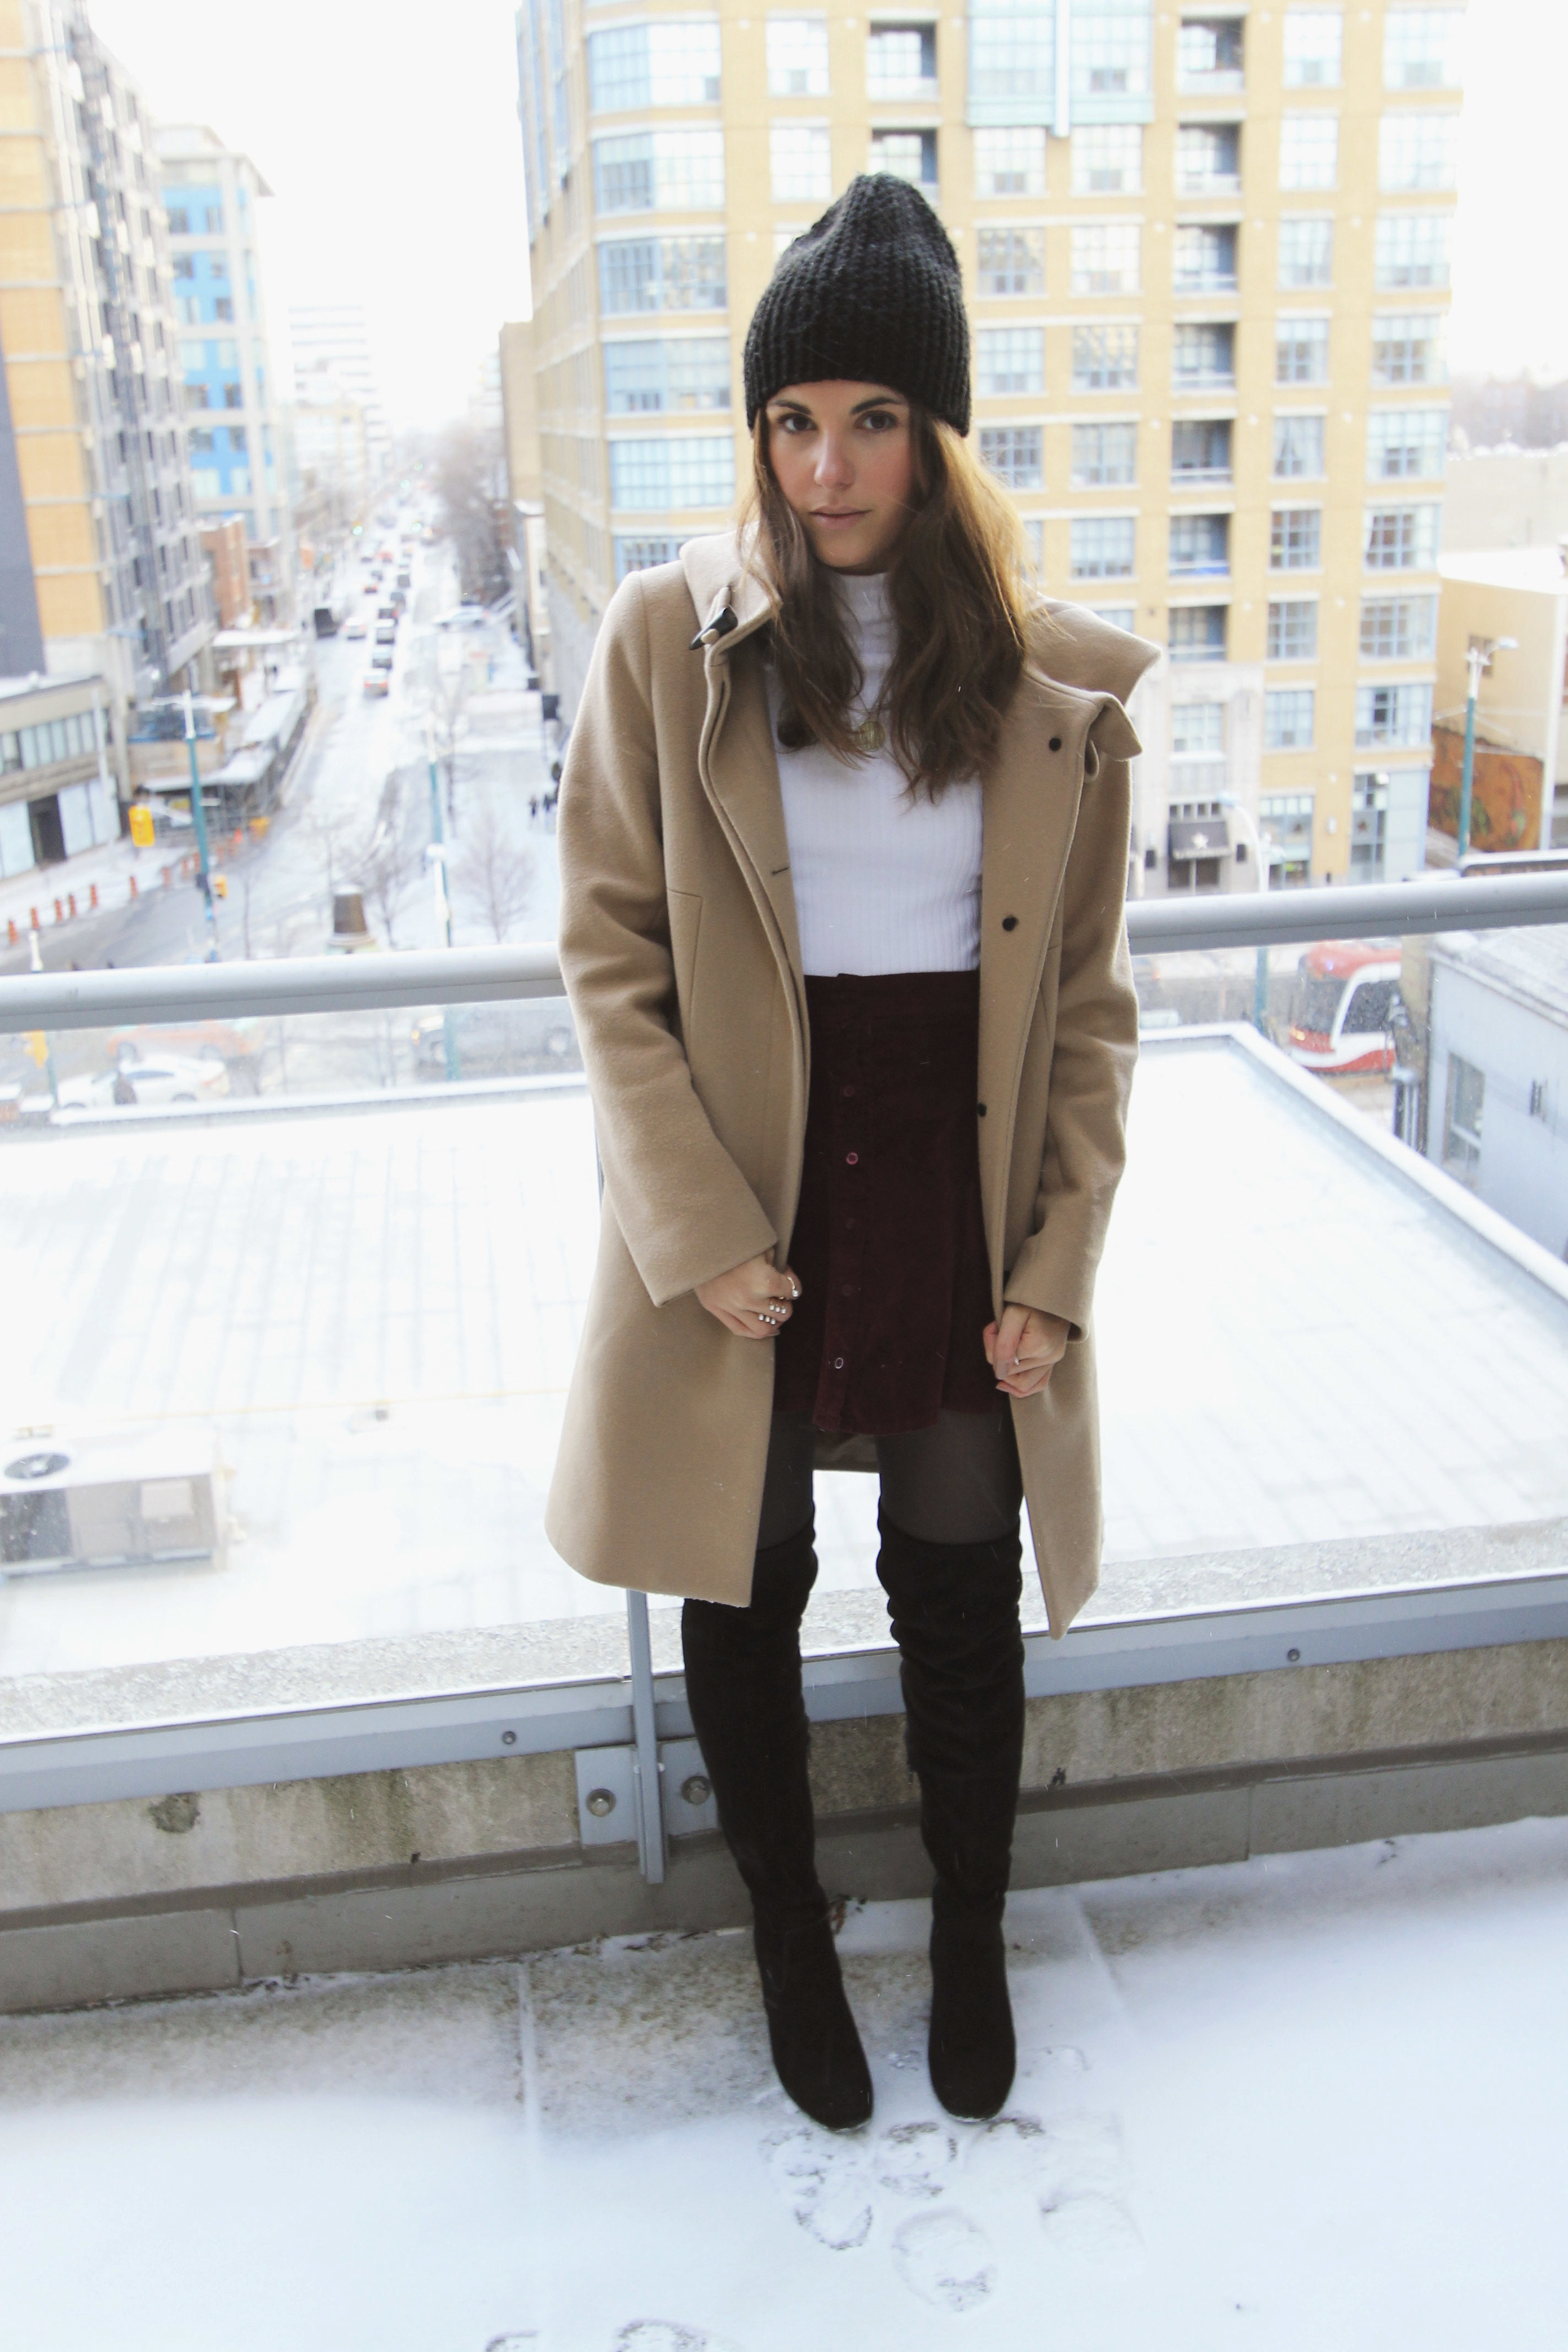 aritzia-forever-21-brandy-melville-toronto-style-outfit.jpg